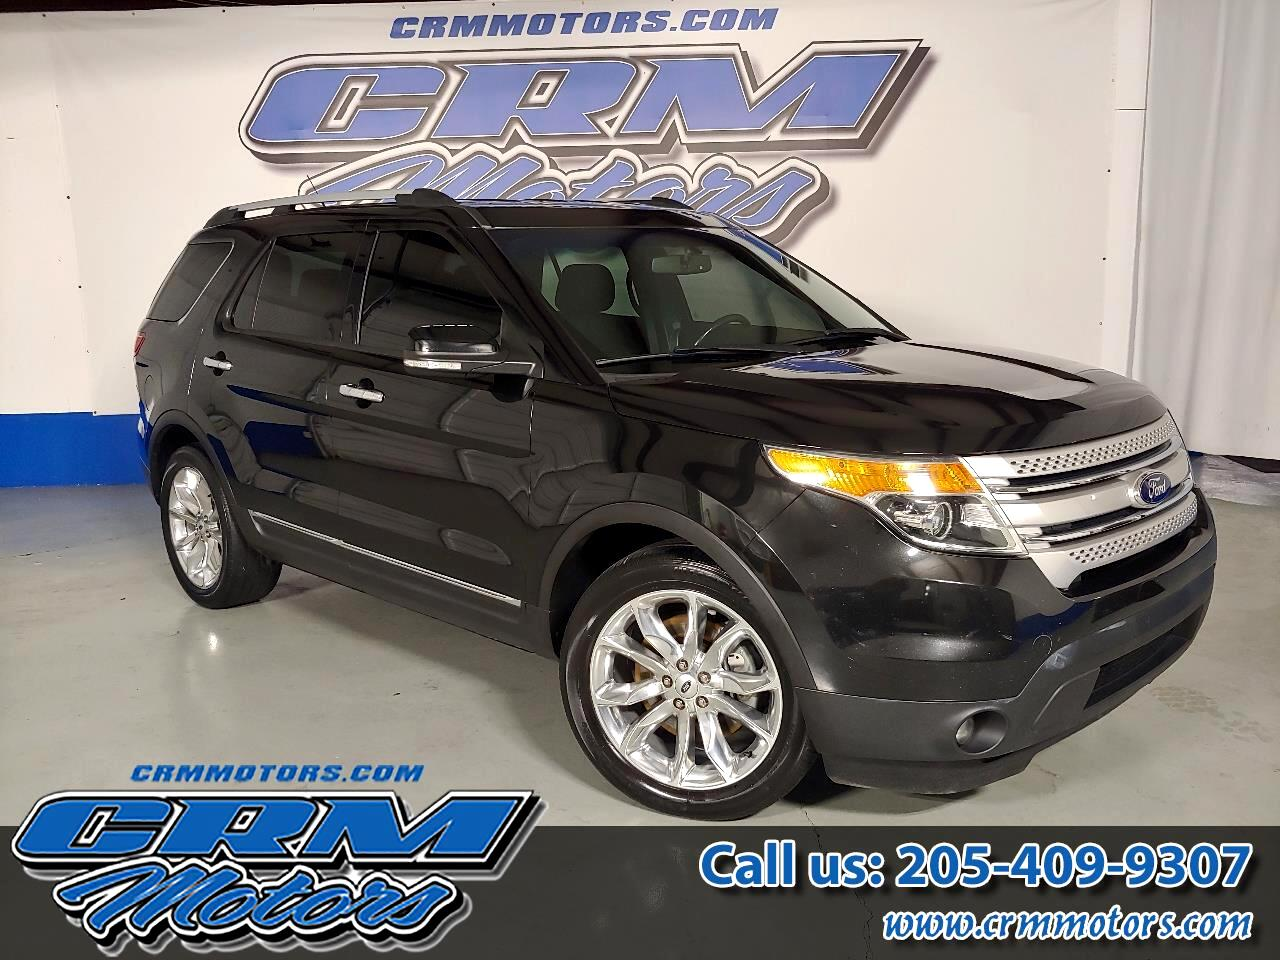 2014 Ford Explorer FWD, XLT, LEATHER & MORE! BEAUTIFUL!